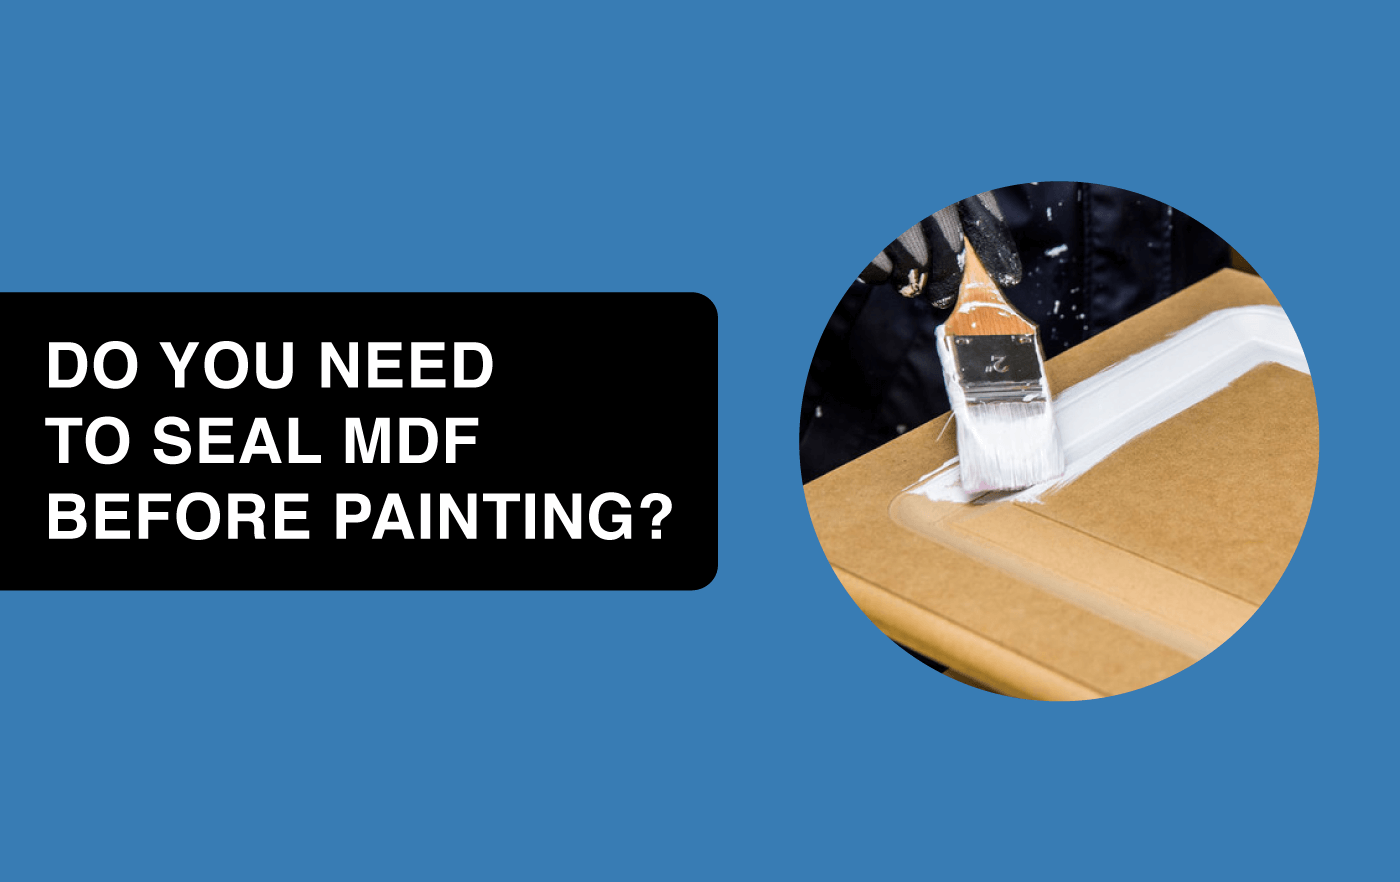 do you need to seal mdf before painting article header image